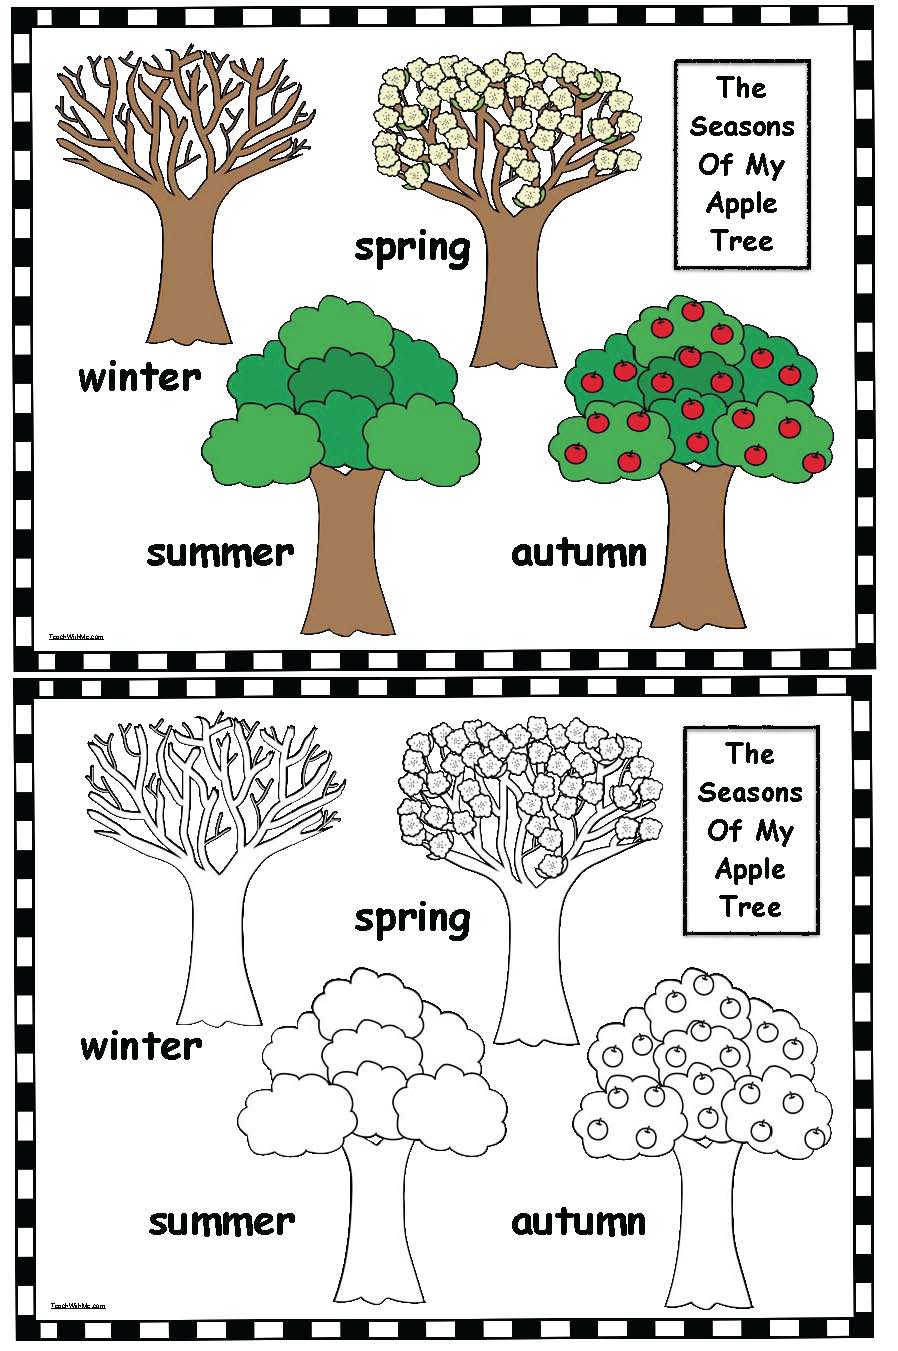 cov seasons of my apple tree poster set 2